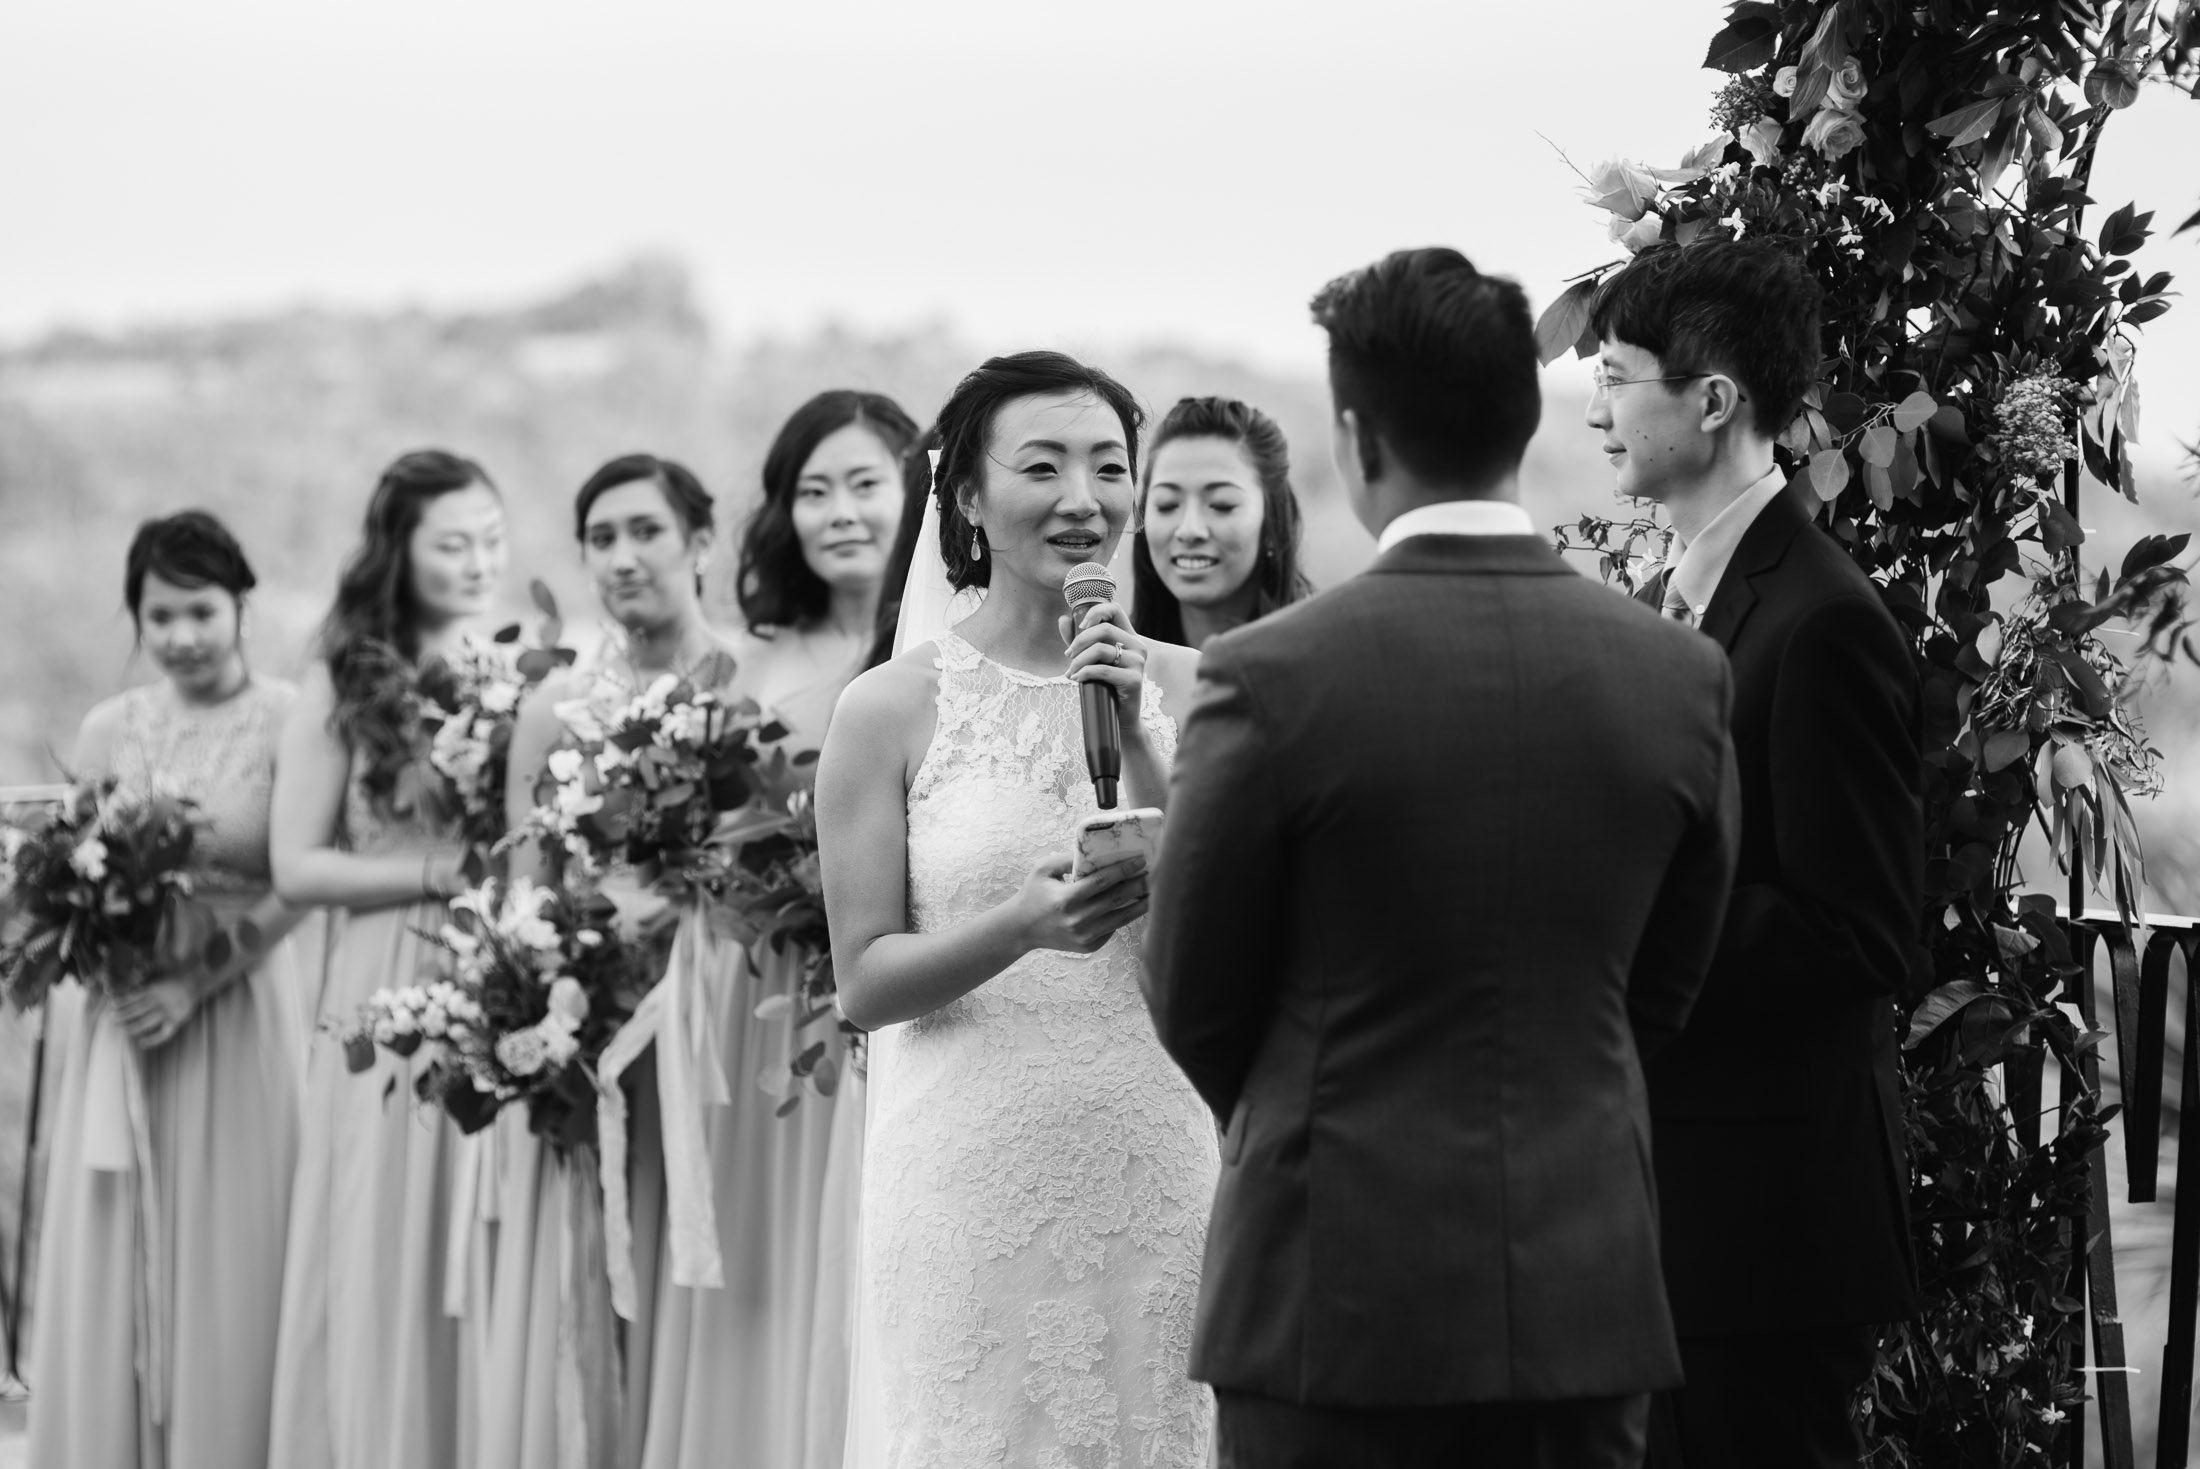 black and white wedding photography at villa antonia